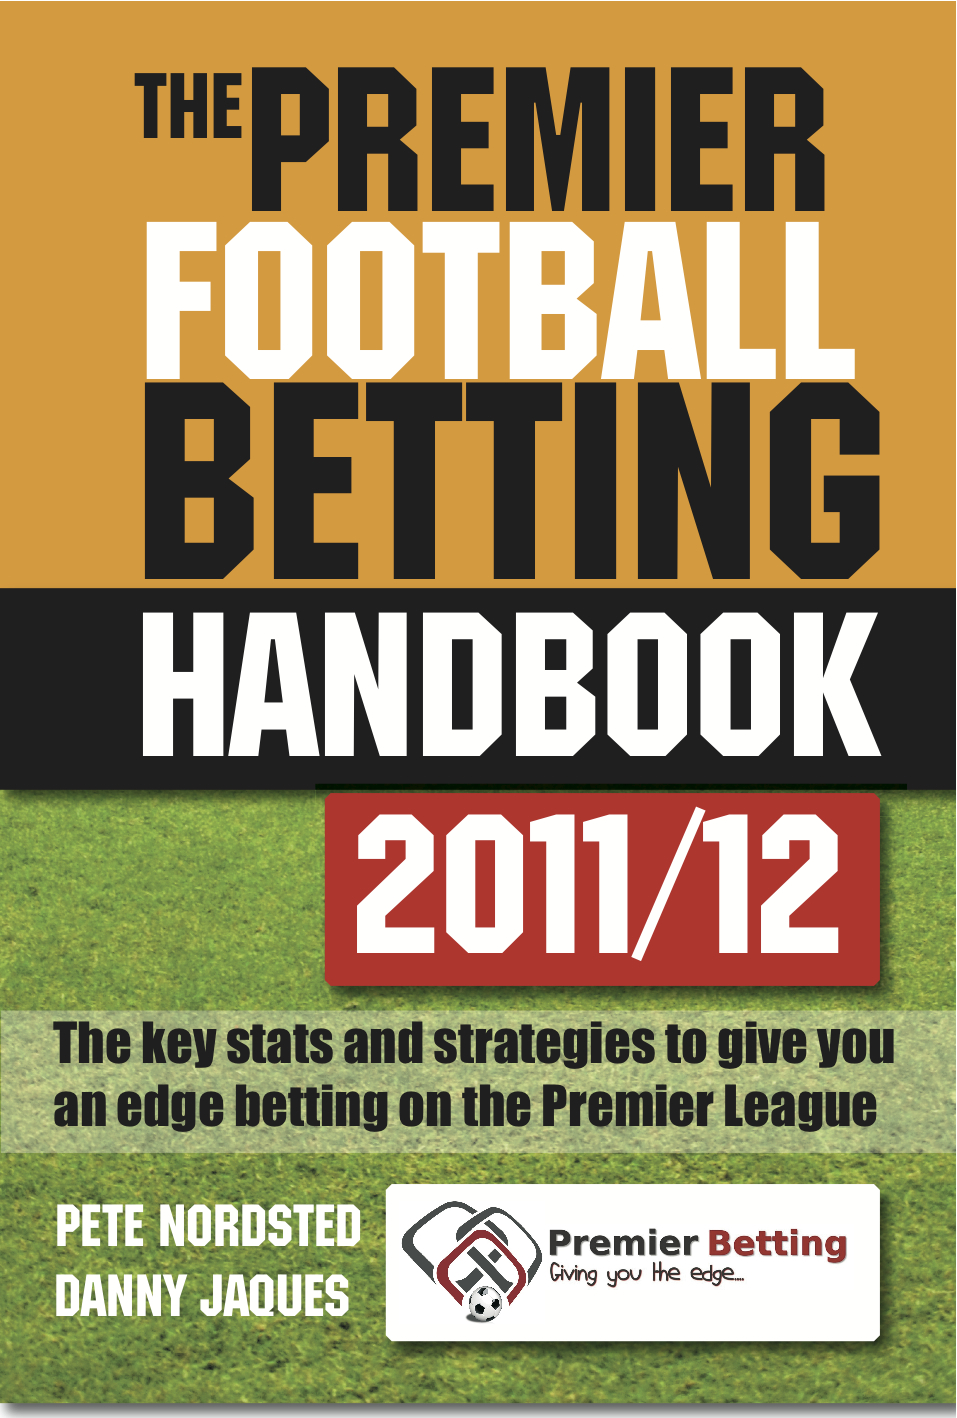 Download Ebook The Premier Football Betting Handbook 2011/12 (2nd ed.) by Jaques Danny Pdf